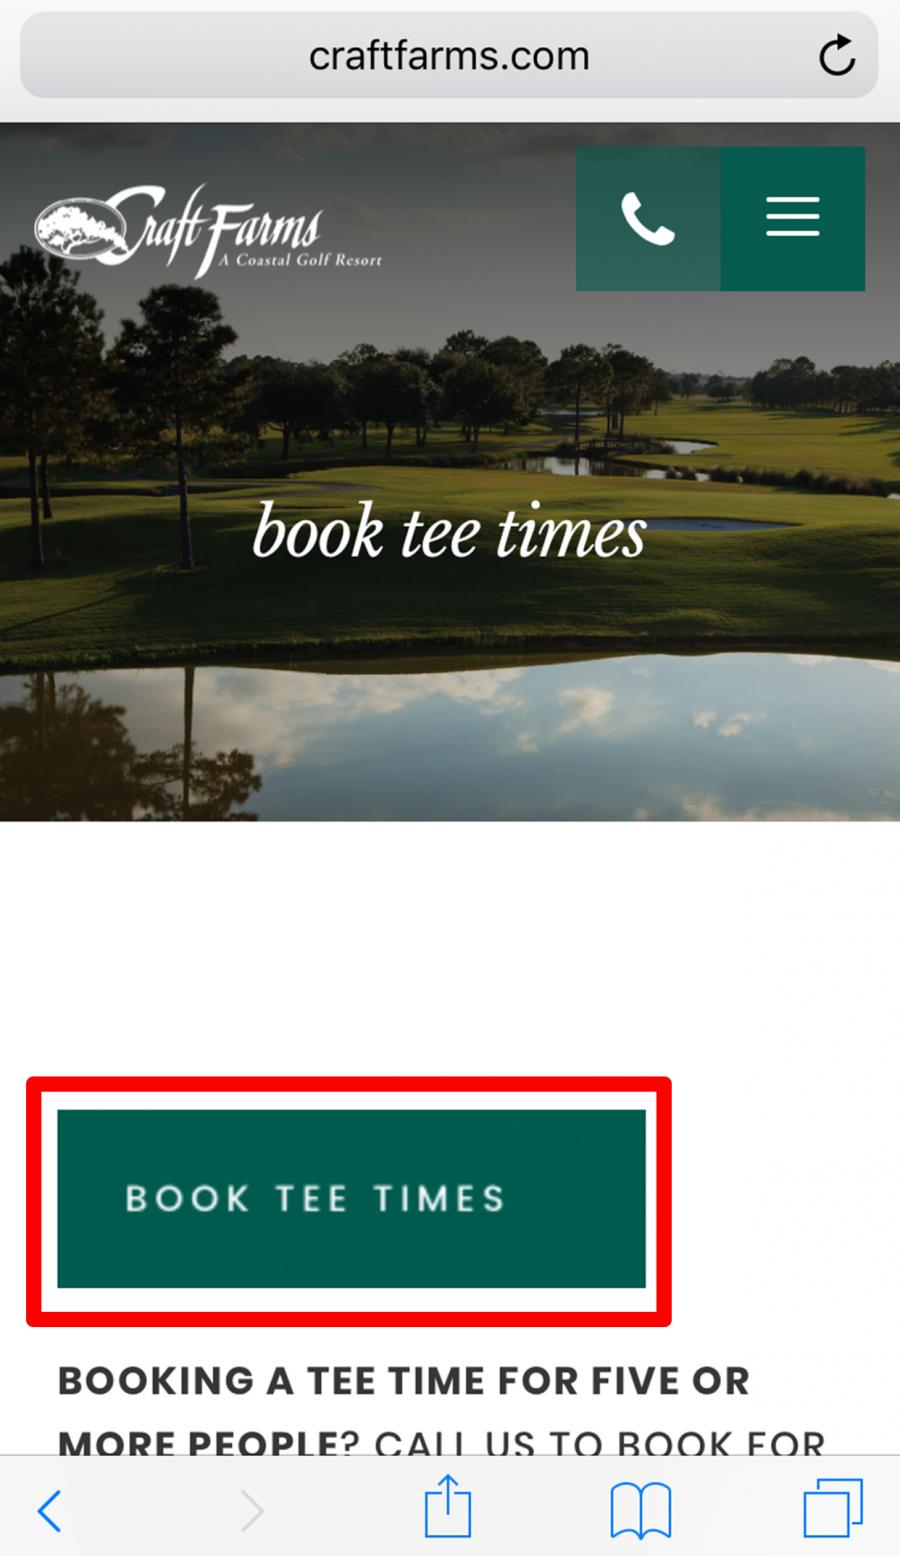 image showing where book tee times link is